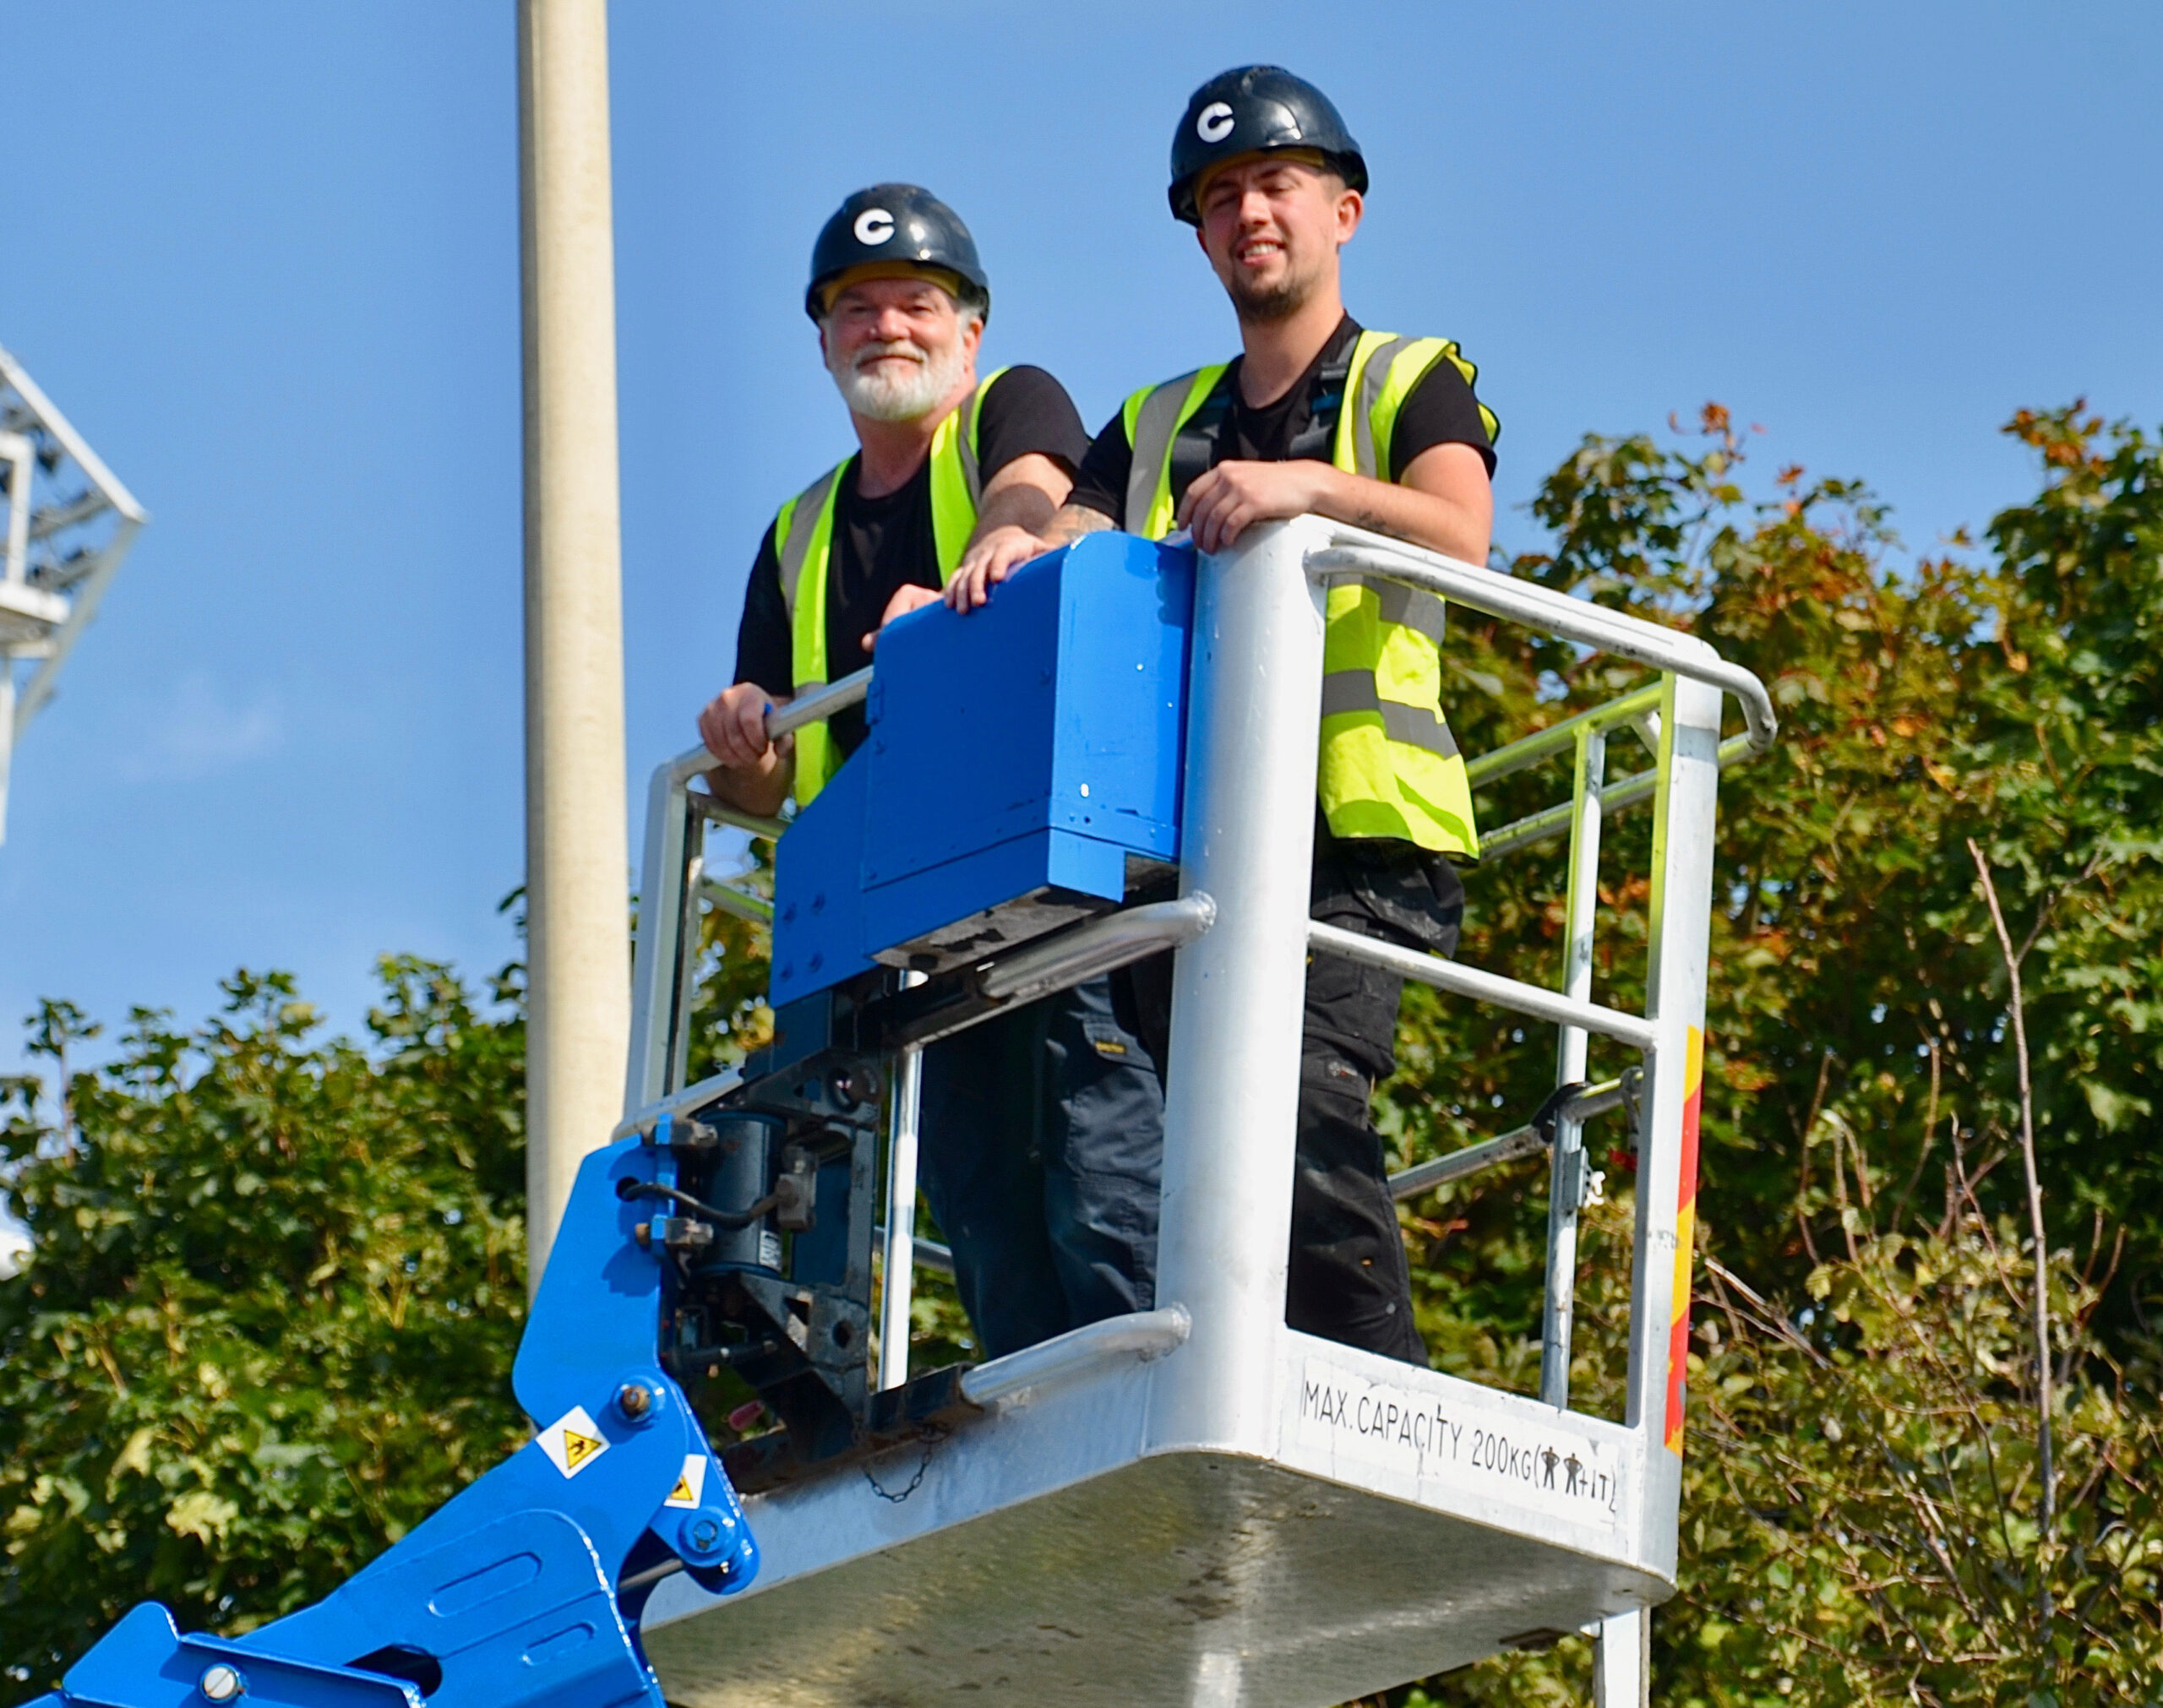 Sam and Steve from the print room department working on a cherry picker